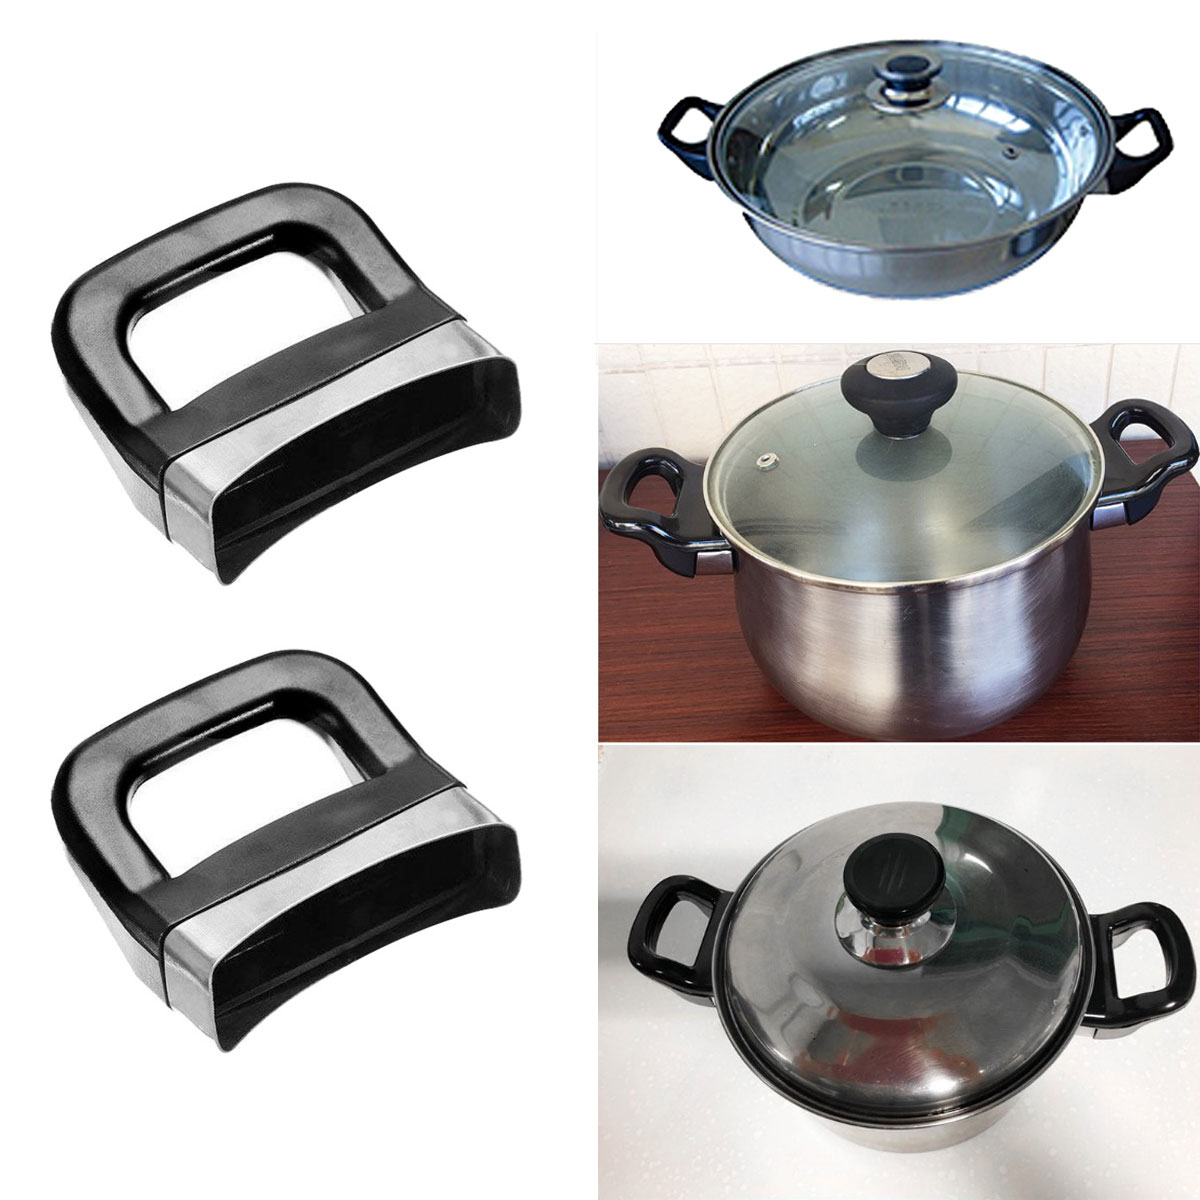 Fgyhtyjuu Carbon Steel Non-Stick Pizza Pan Oven Baking Trays Mold Microwave Cake Dish Mould Plate Kitchen Chicken Tools